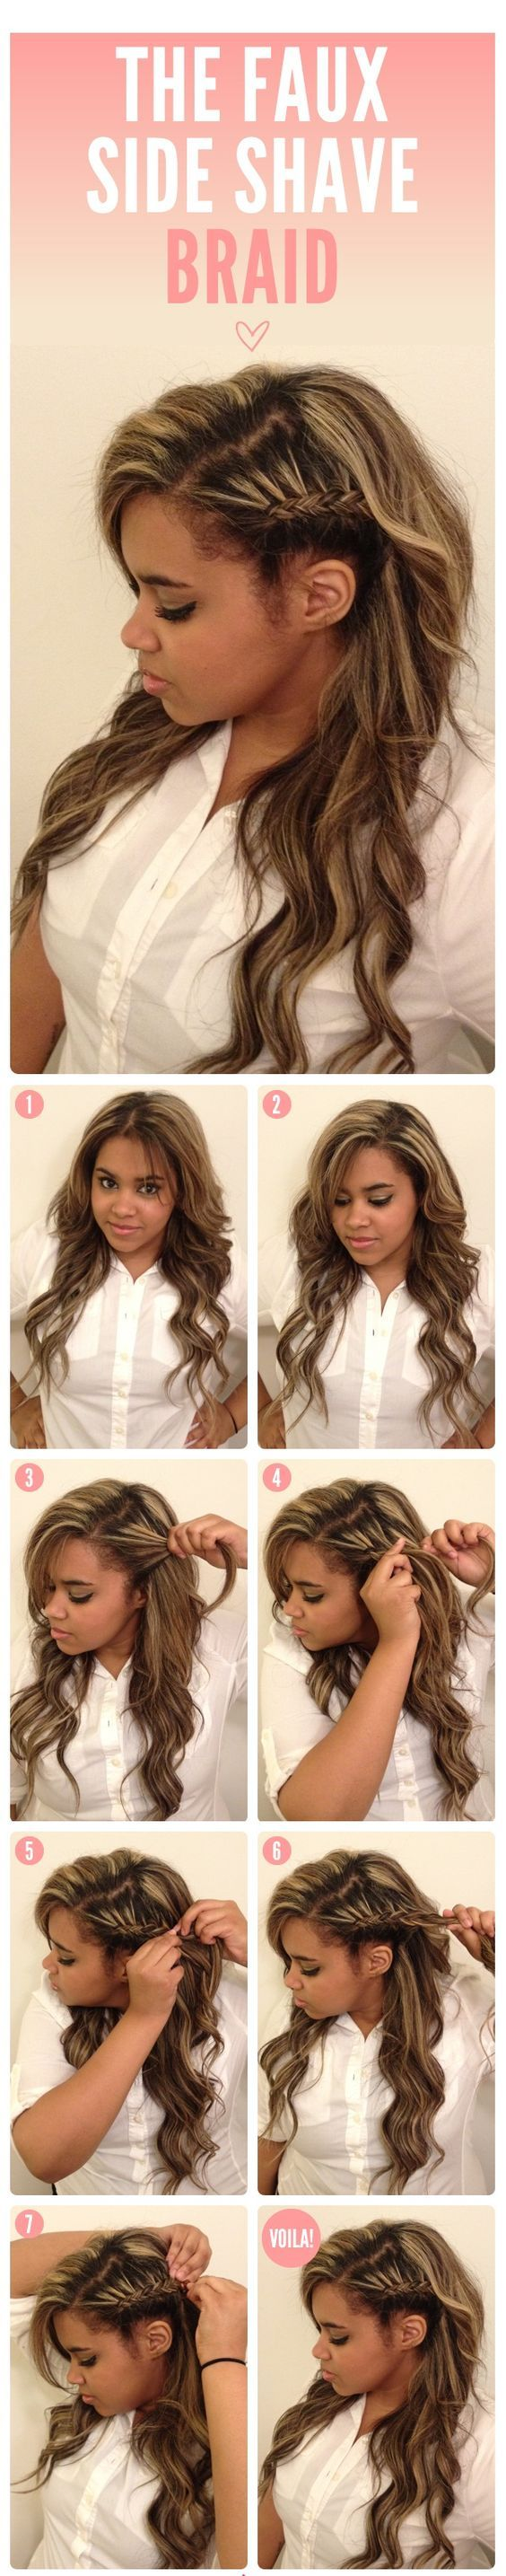 Love this braid but step 1 look straight ahead, step 2 look down? Haha useless picture.